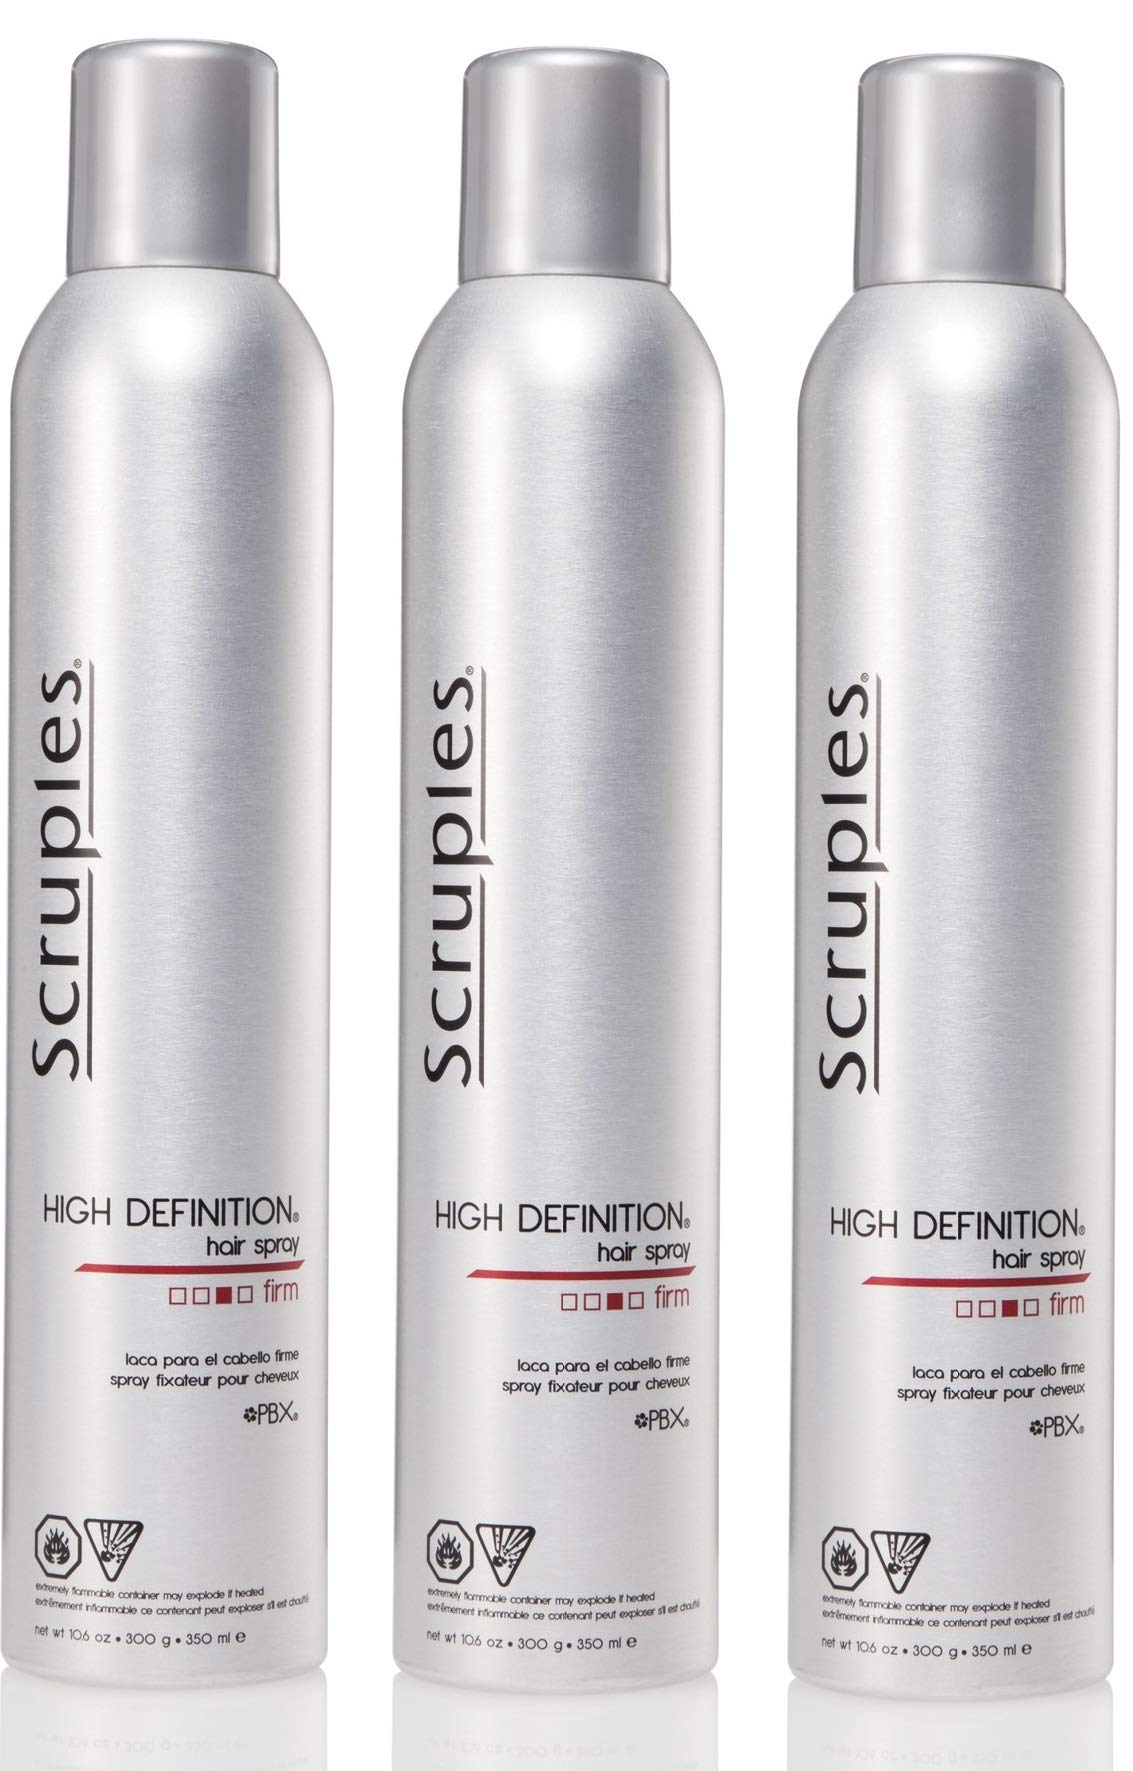 Scruples High Definition Hair Spray for Men & Women (10.6 Oz) - Shaping, Volumizing, Texturizing Setting Spray for Shine and Frizz Control - Suitable For All Hair Types (Pack of 3) by Scruples